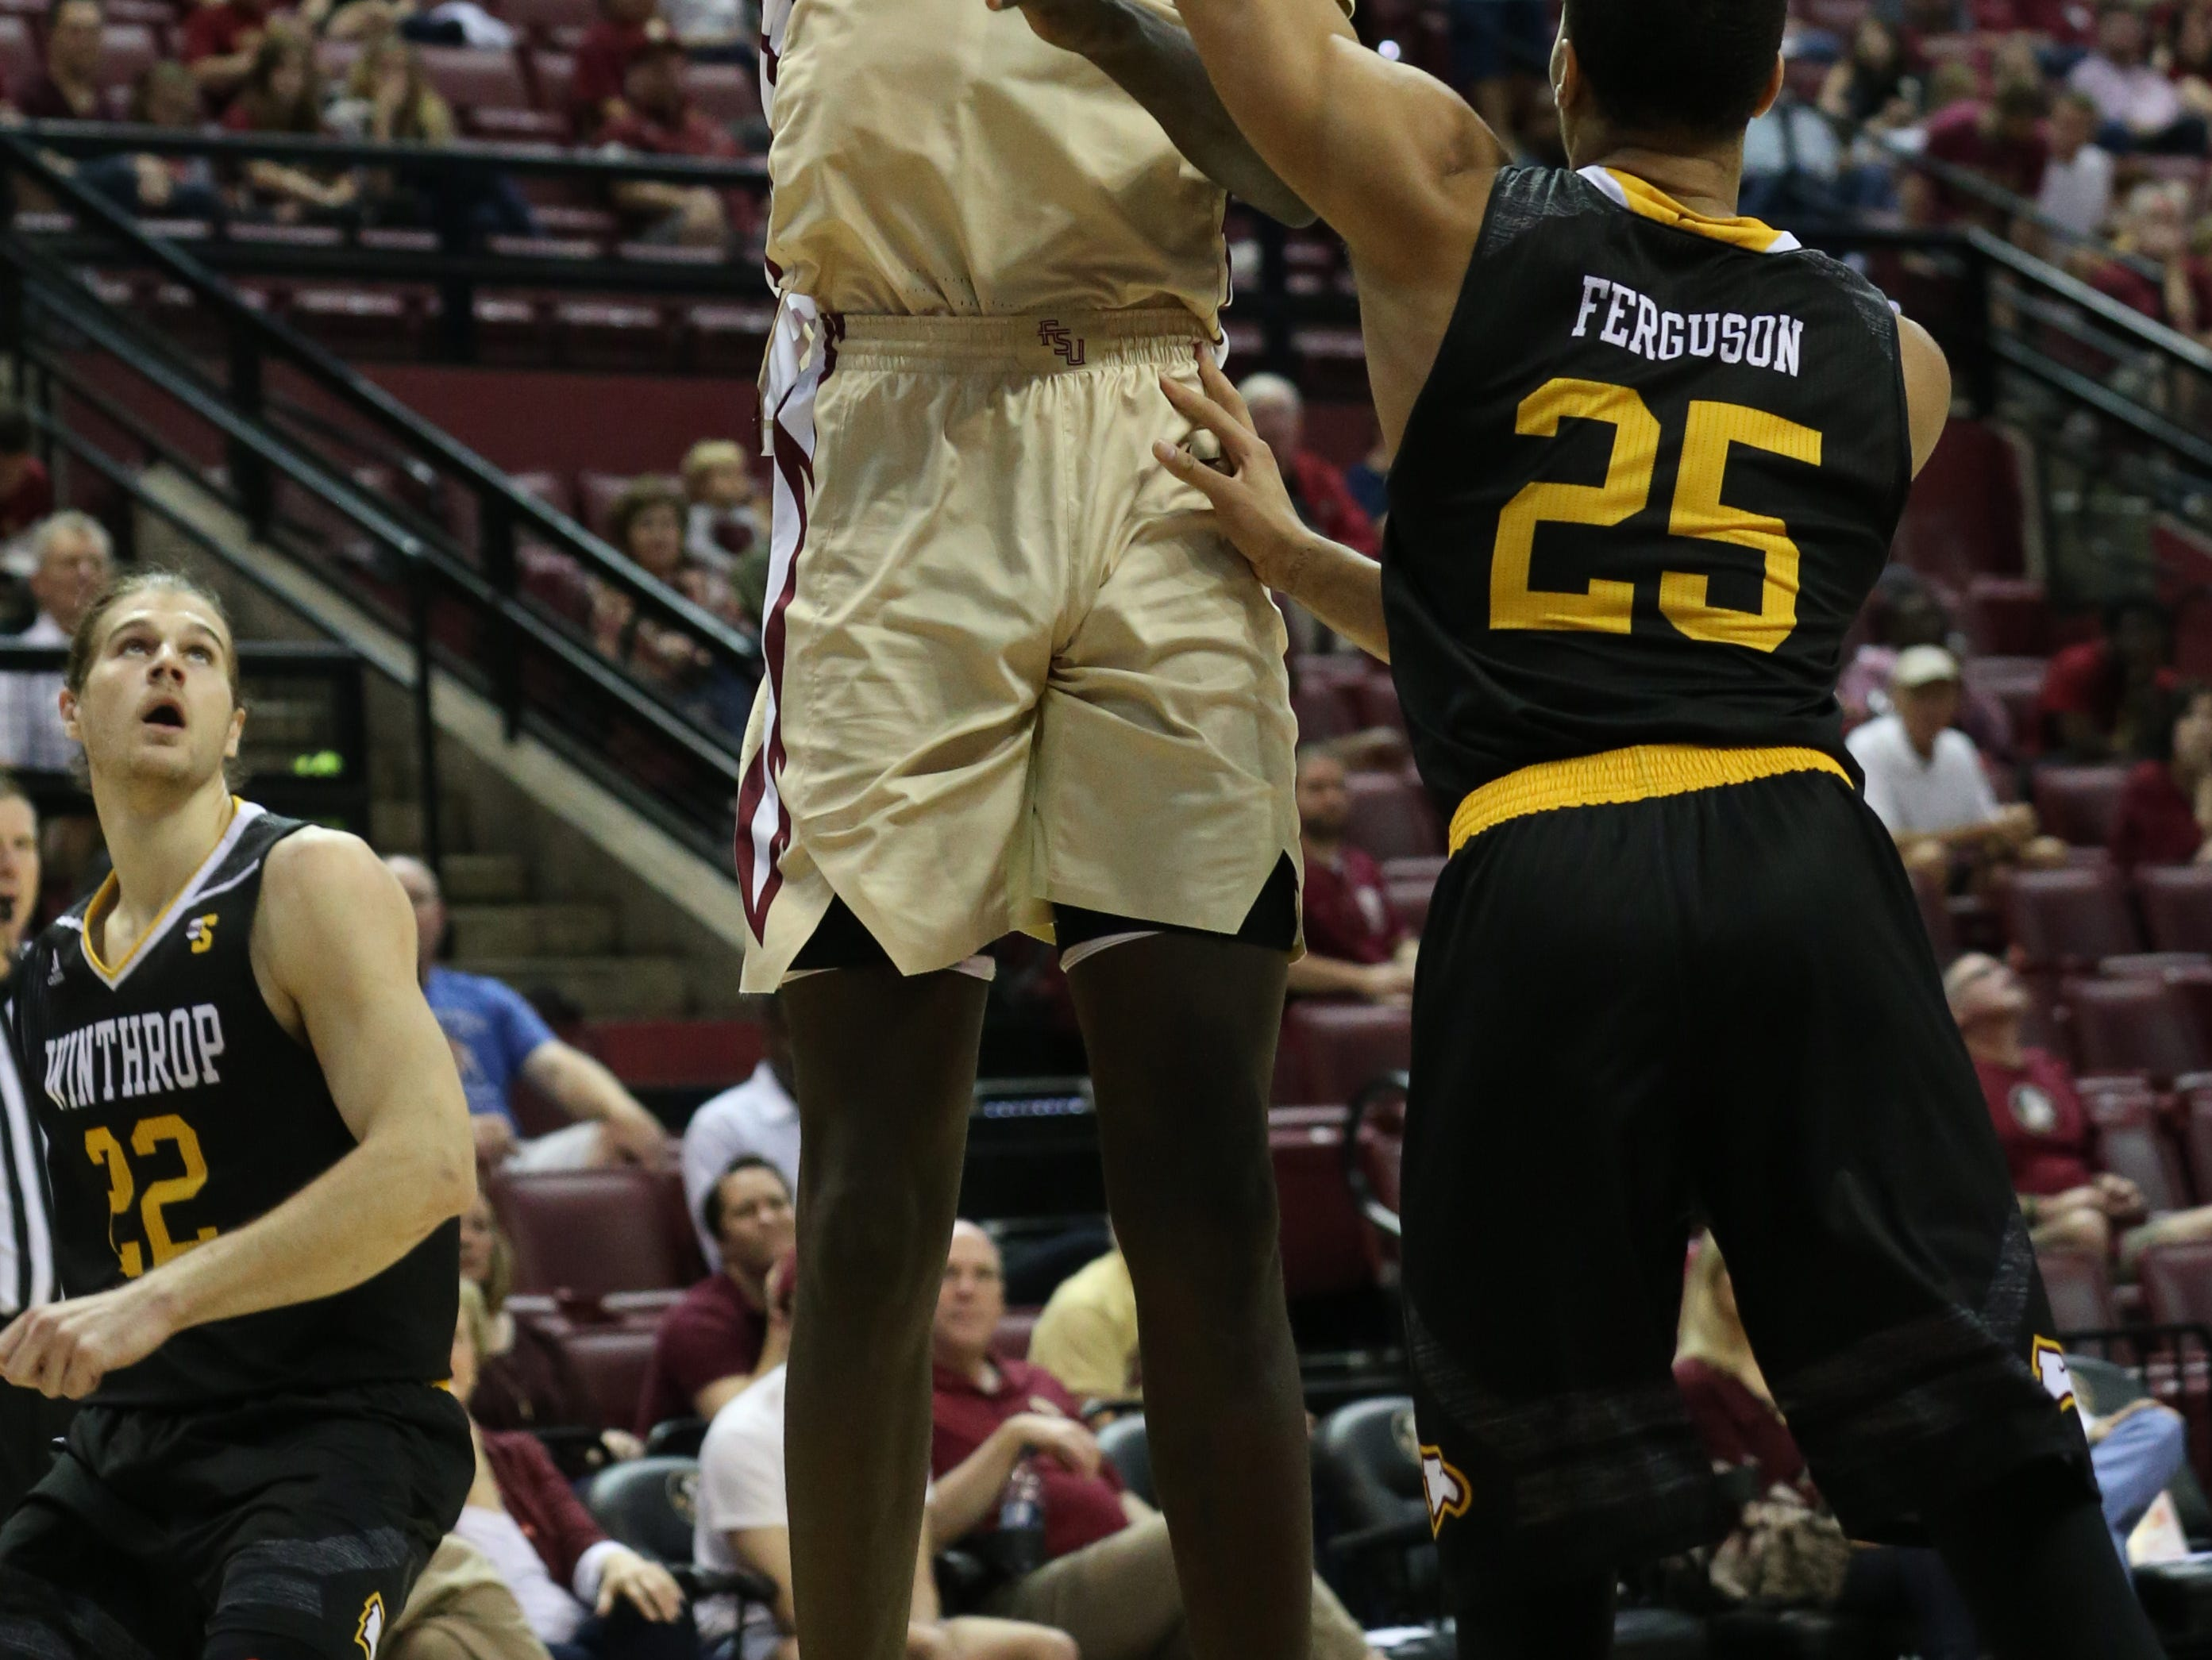 Florida State Seminoles center Christ Koumadje (21) shoots over Winthrop Eagles forward Josh Ferguson (25) from inside the paint. The Florida State Seminoles host the Winthrop Eagles for men's basketball at the Tucker Civic Center, Tuesday, Jan. 1, 2019.